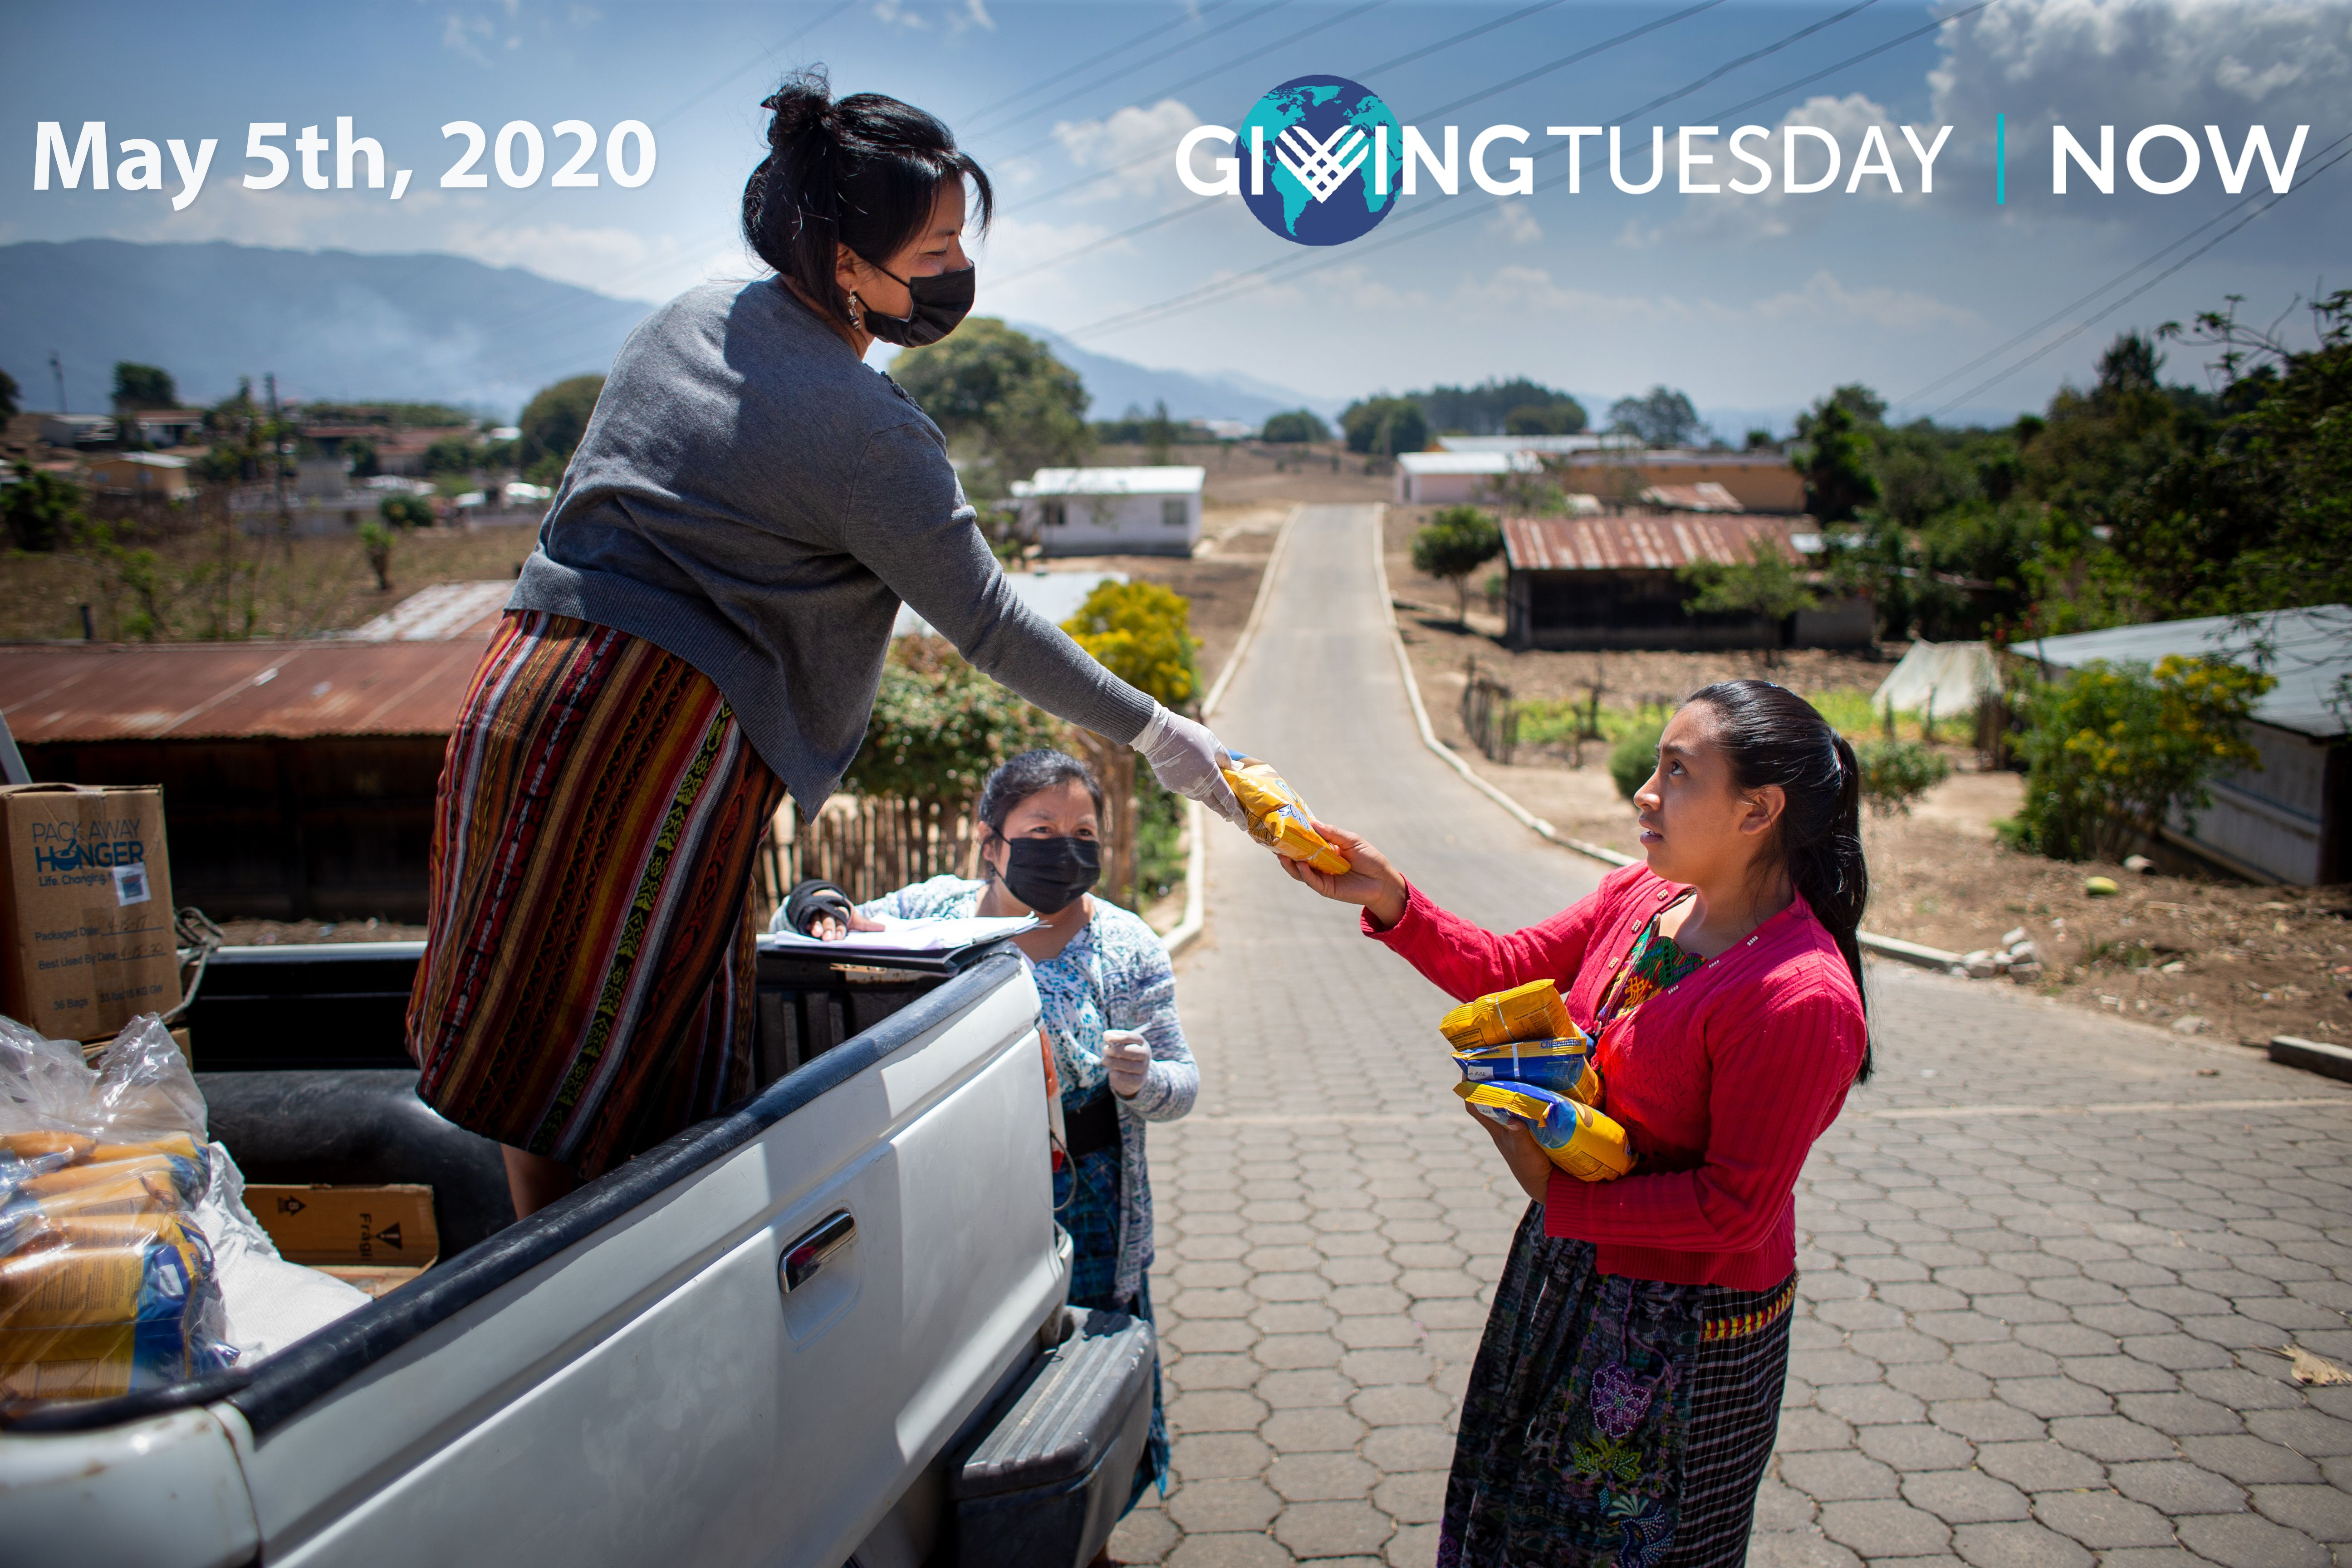 On #GivingTuesdayNOW, we're counting on YOU!